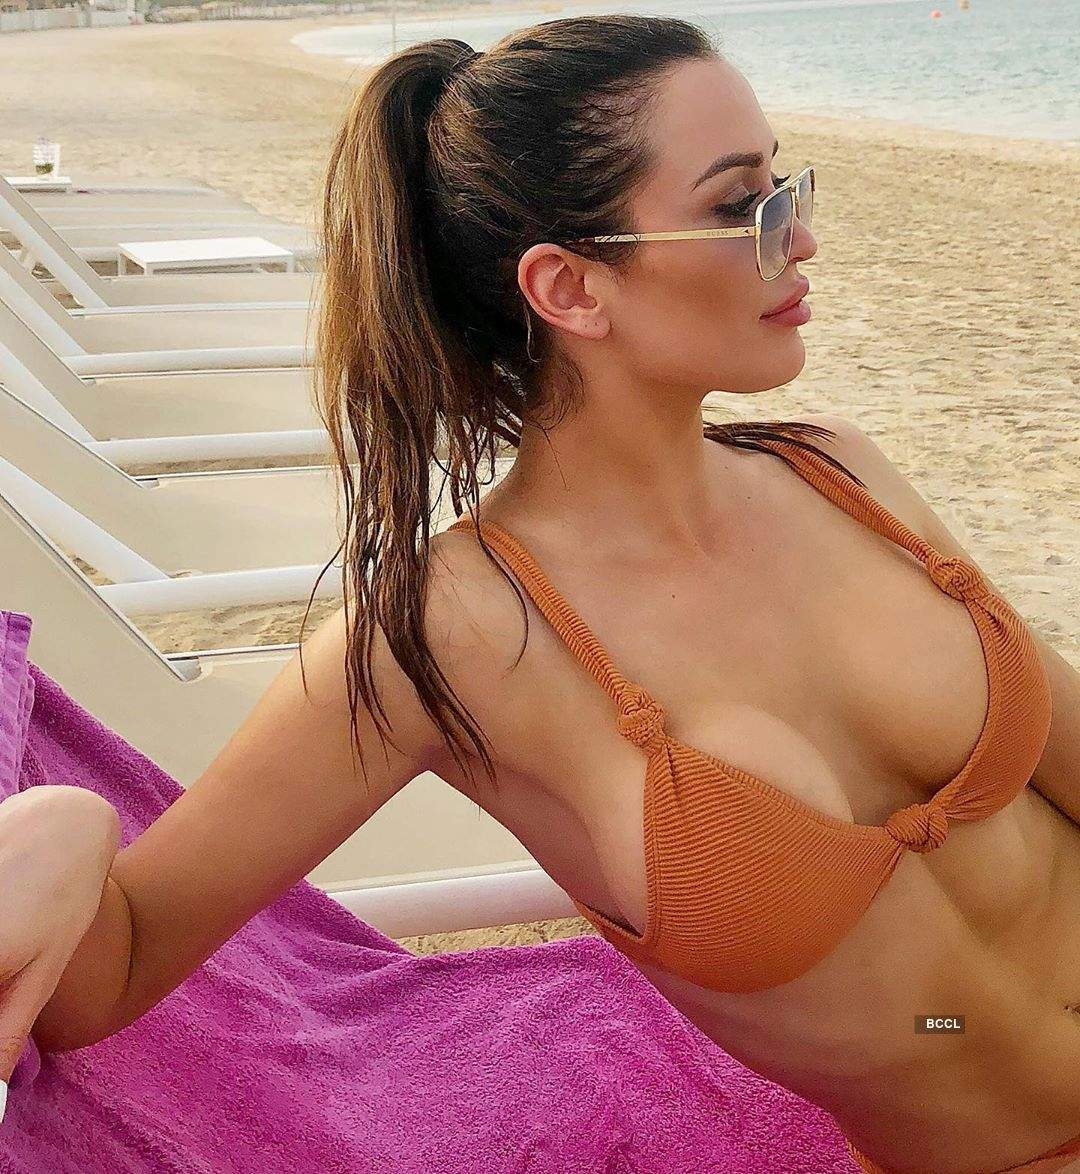 Ex-Bigg Boss contestant Lucinda Nicholas ups the hotness quotient in a bikini